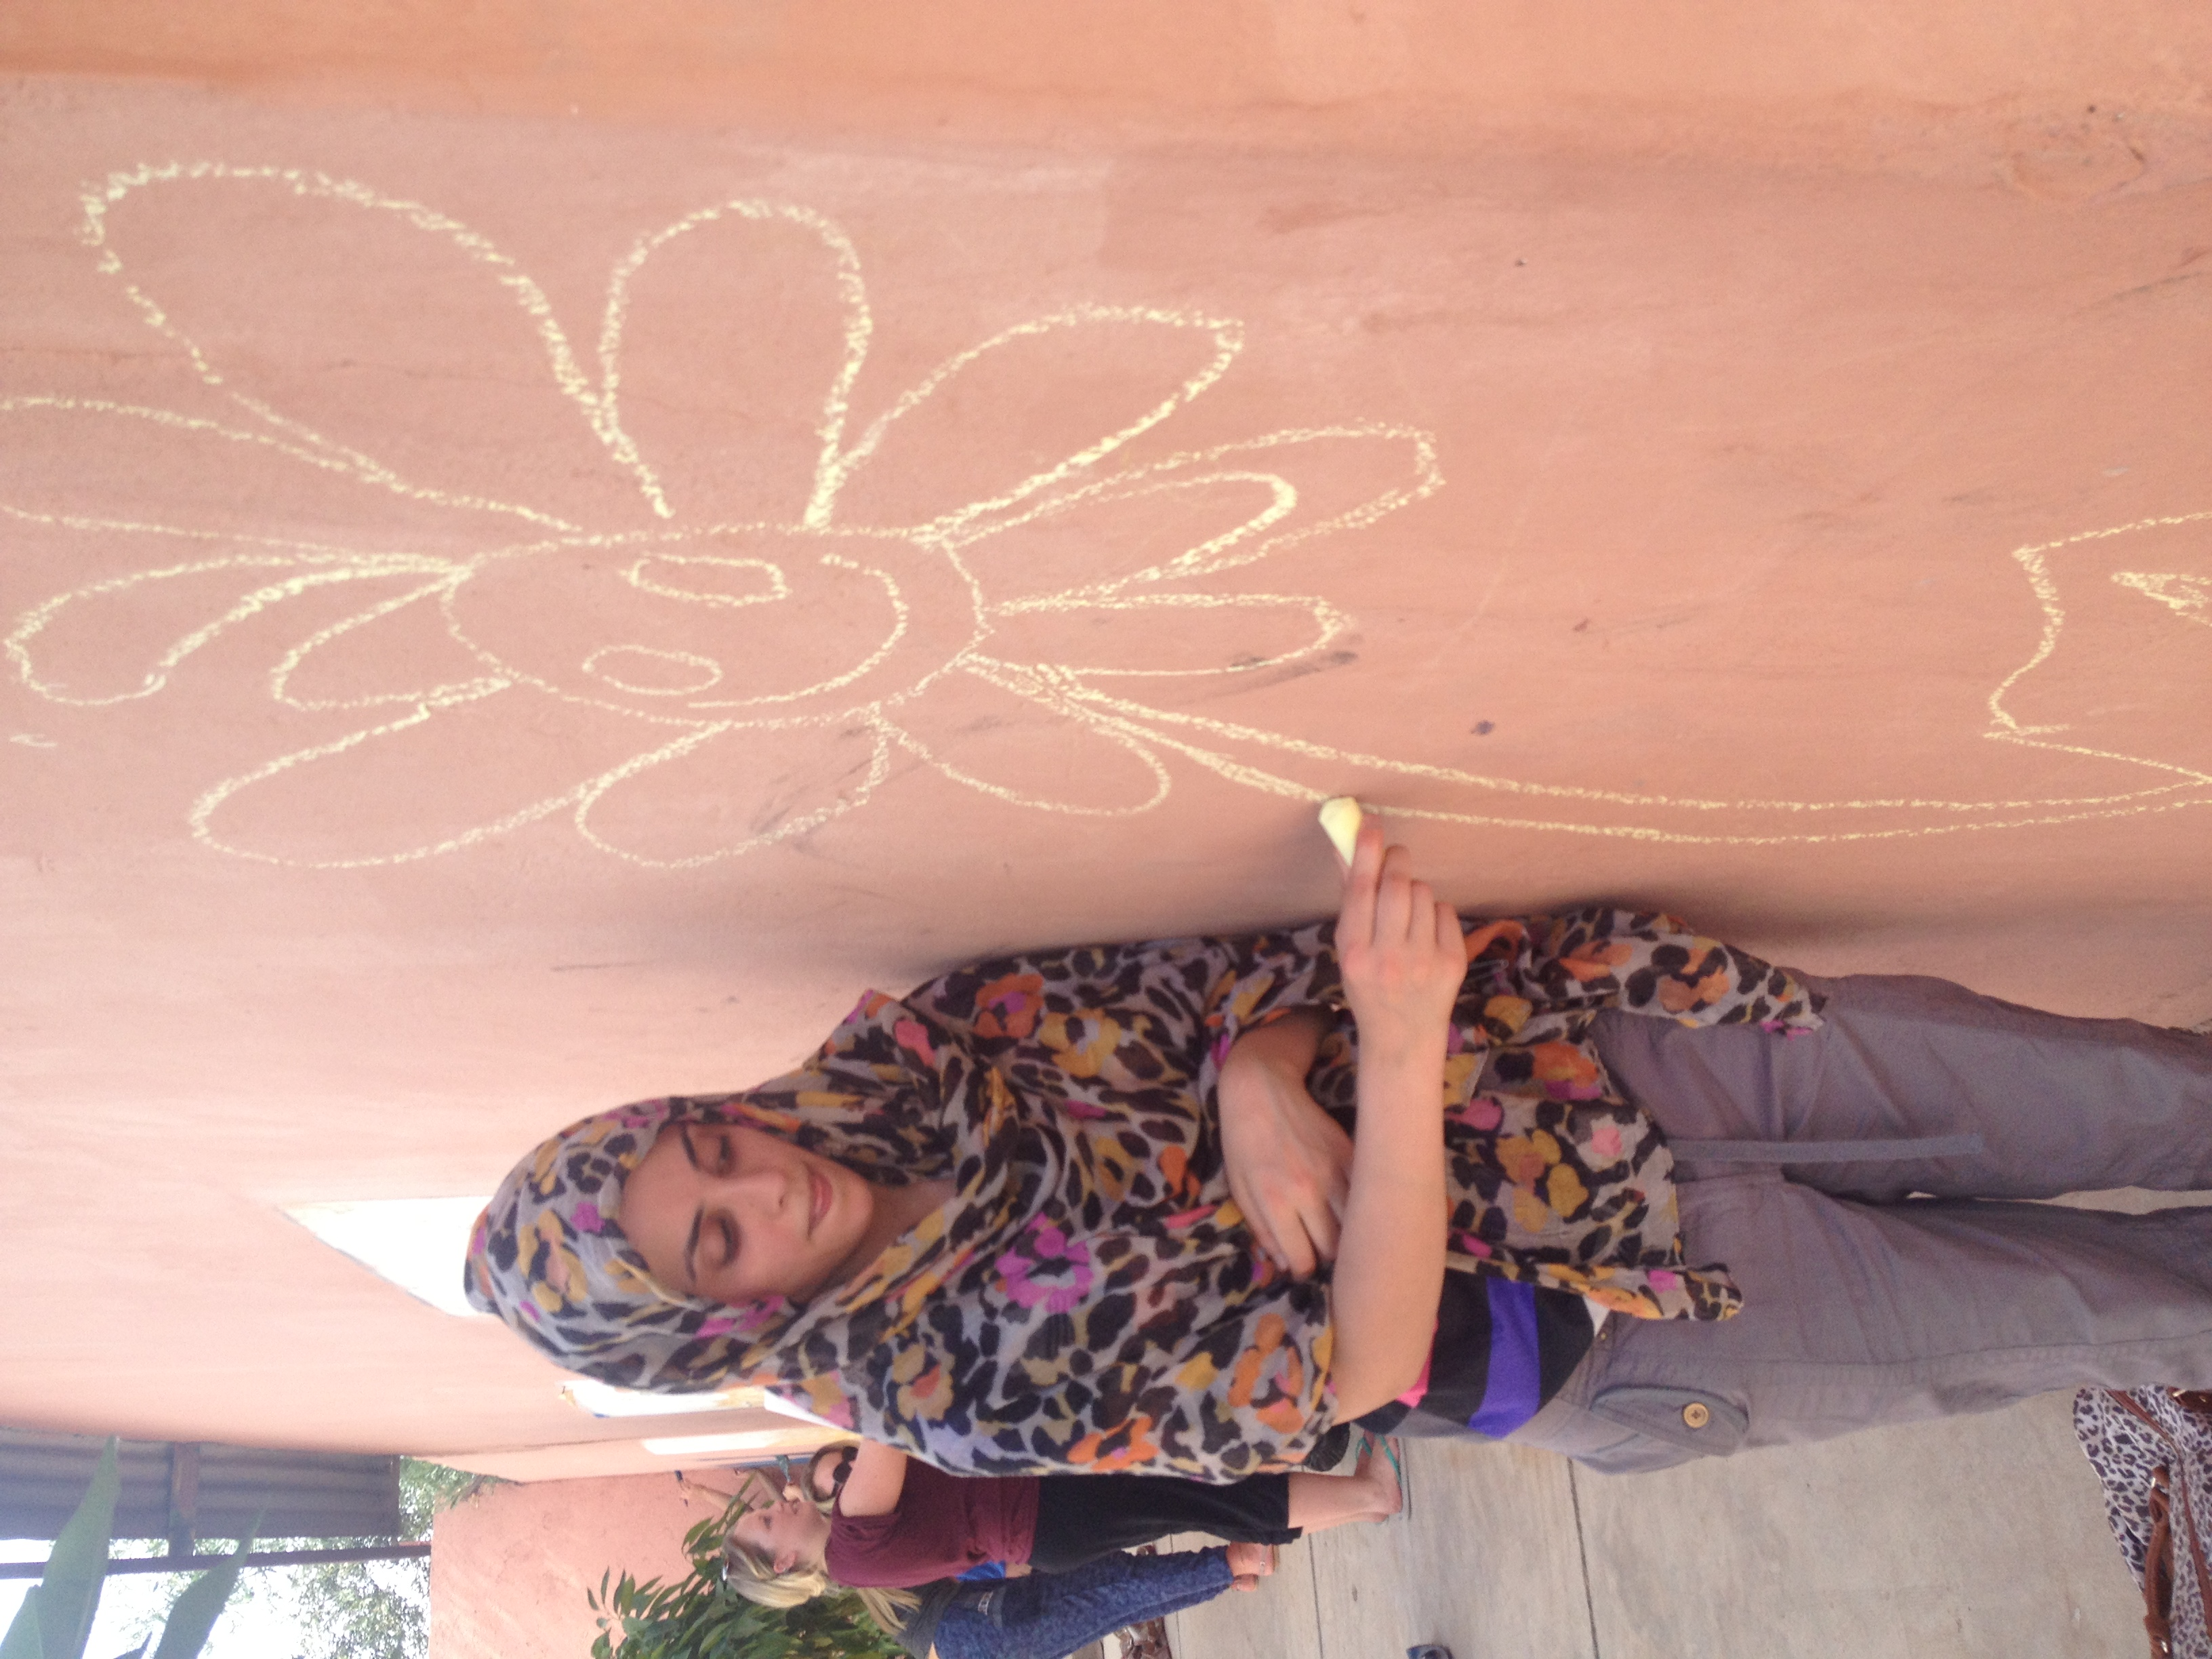 Female student drawing on a wall